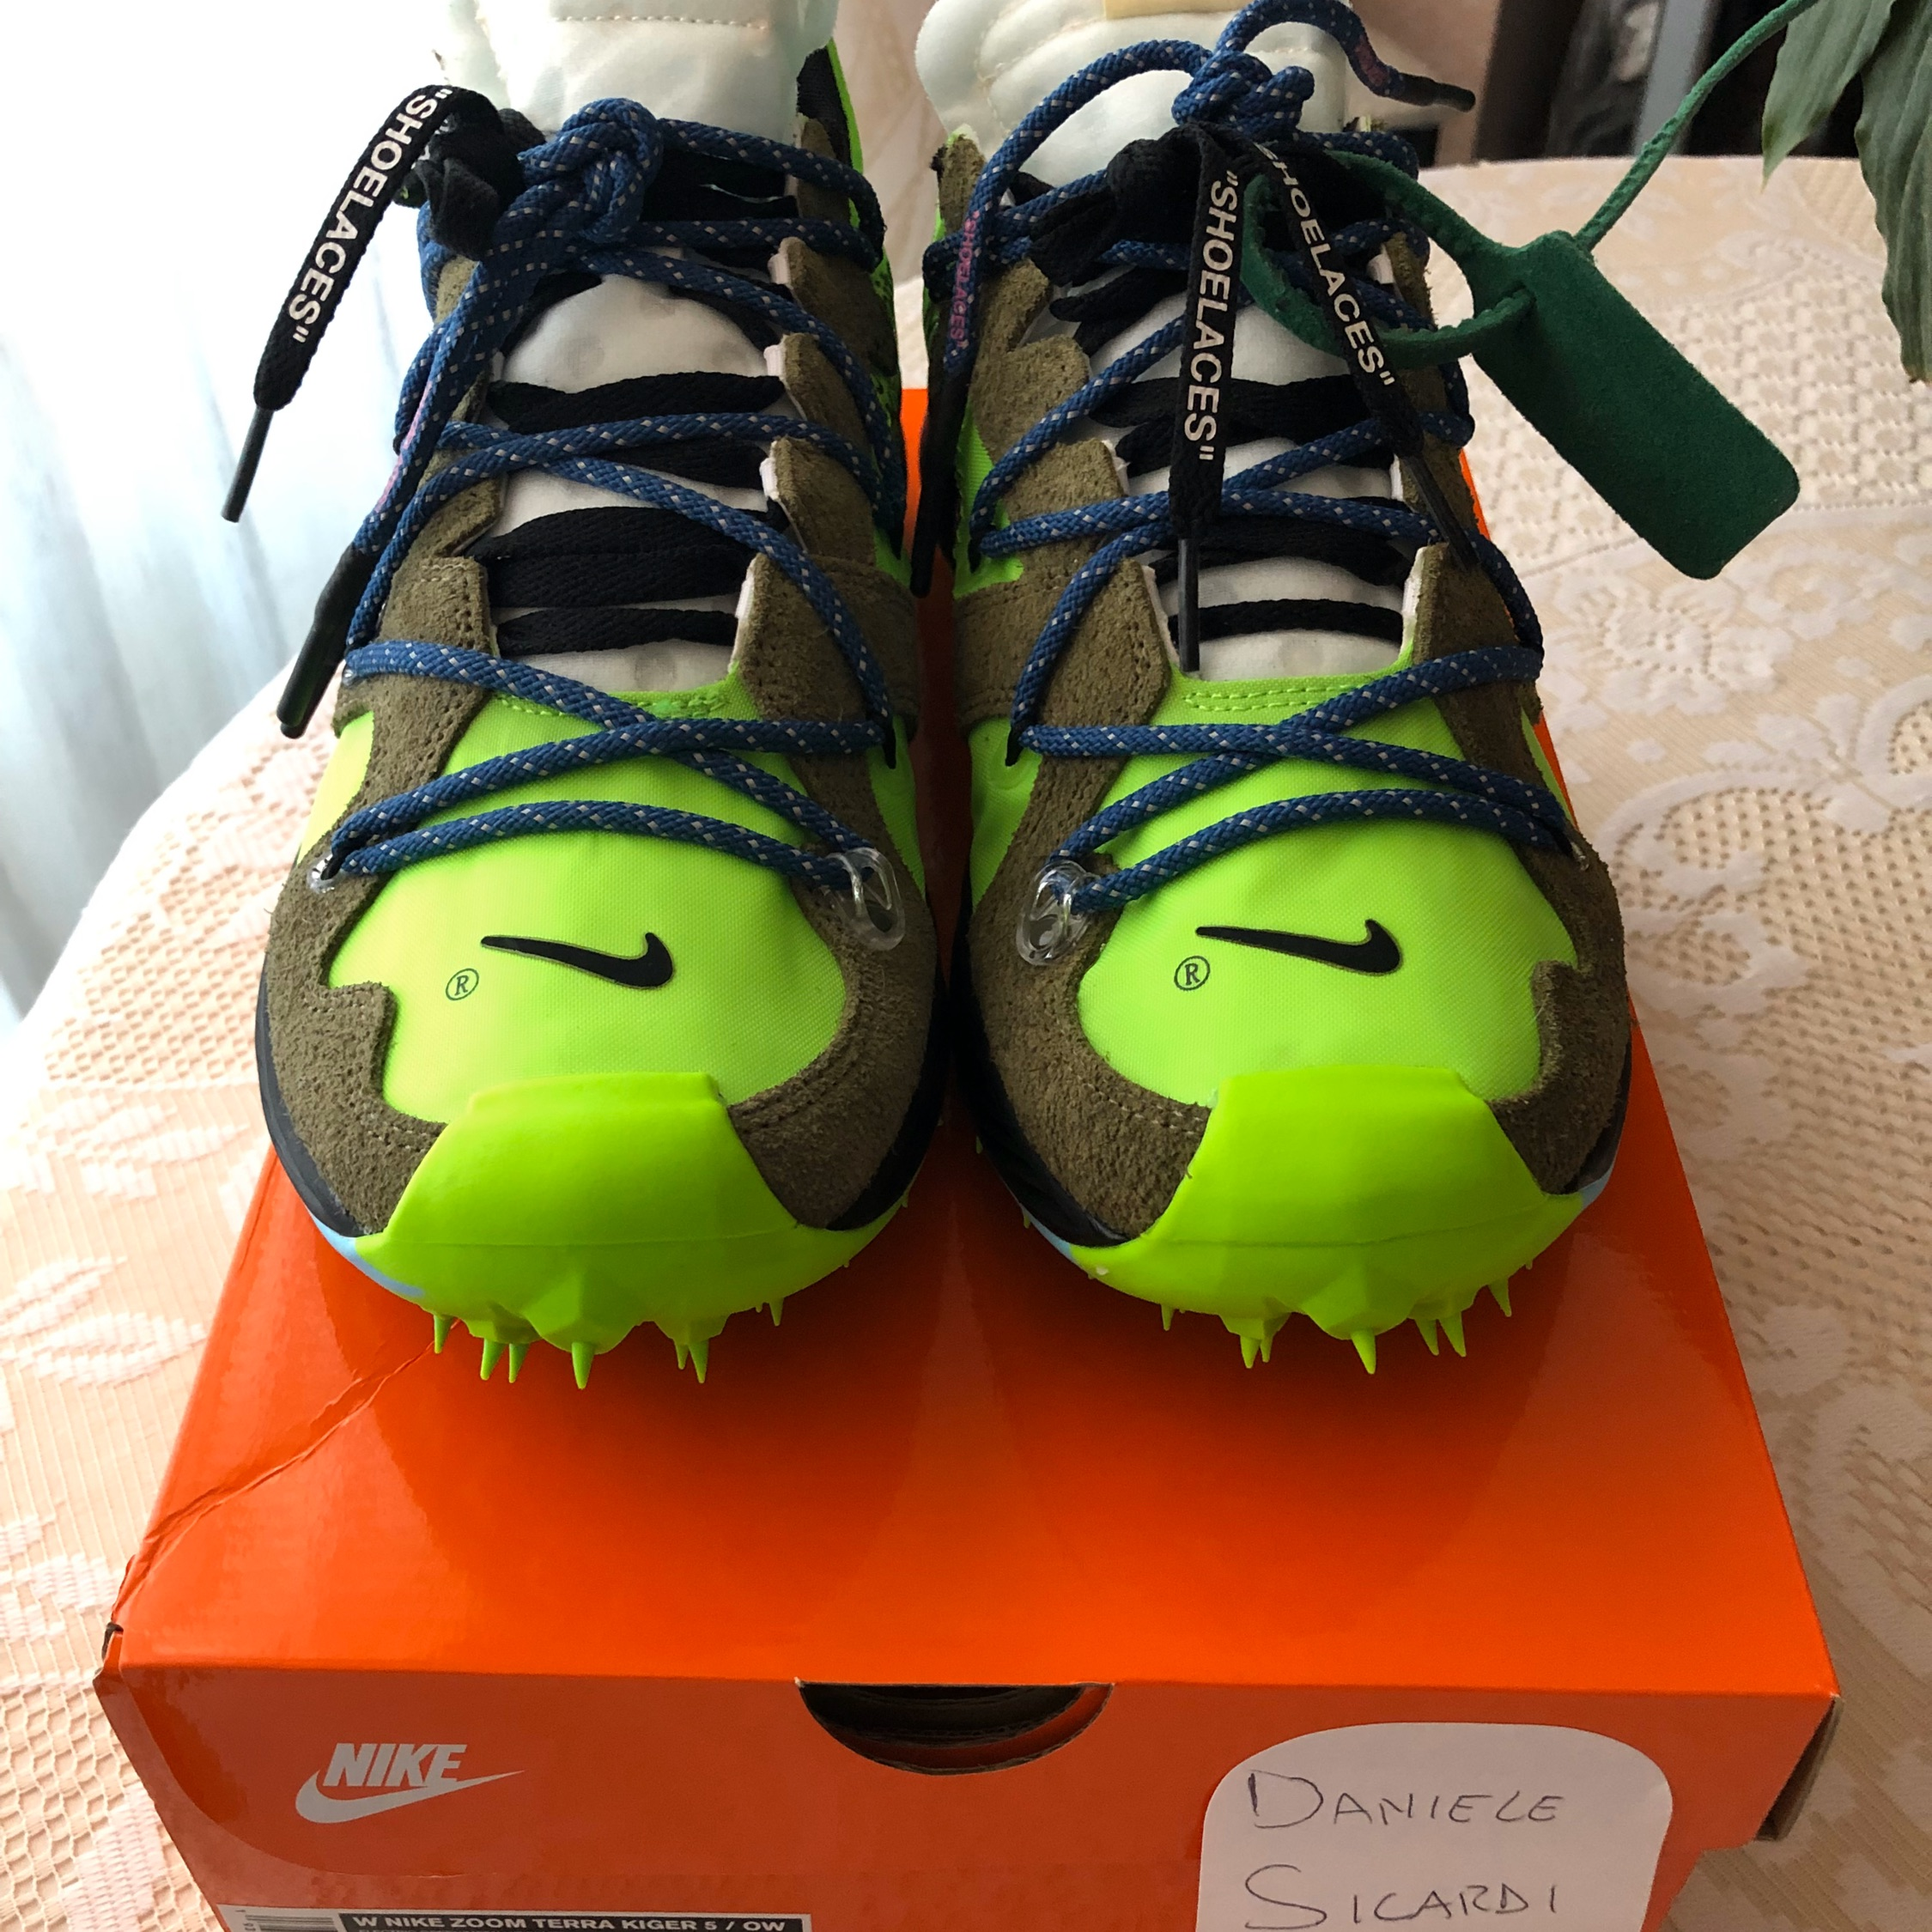 Nike X Off-White Zoom Kiger 5 Green